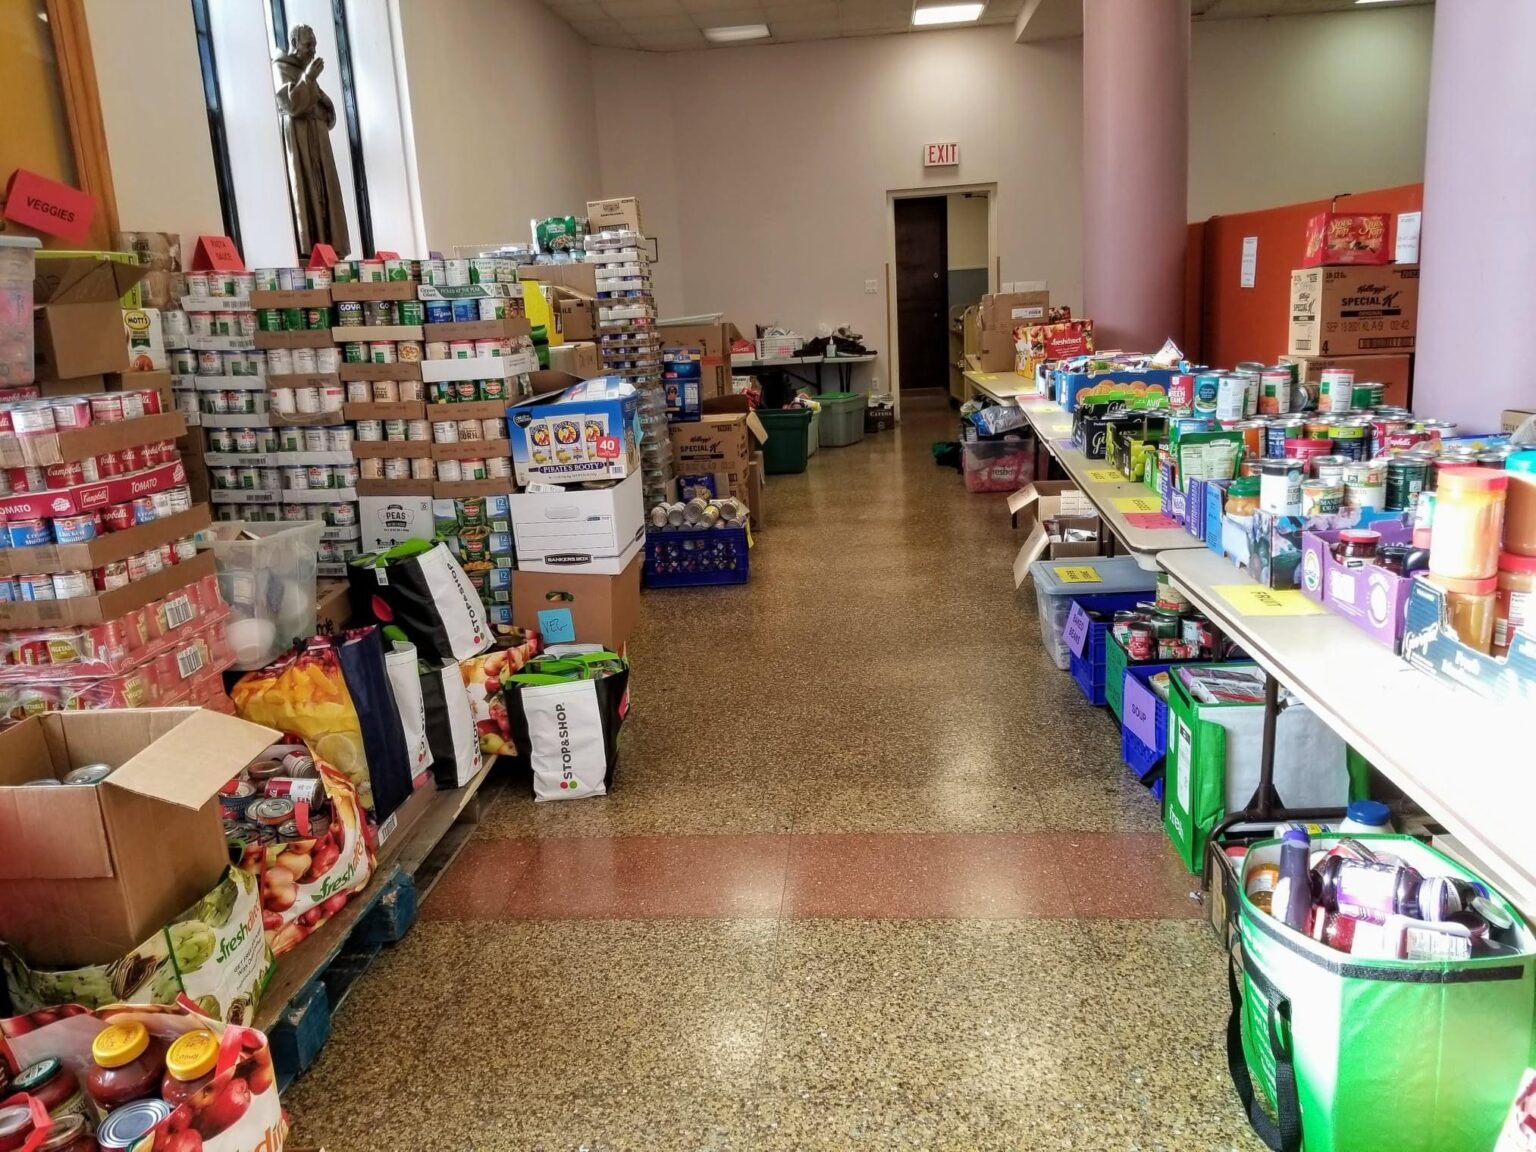 The Food Pantry at Our Lady of Sorrows